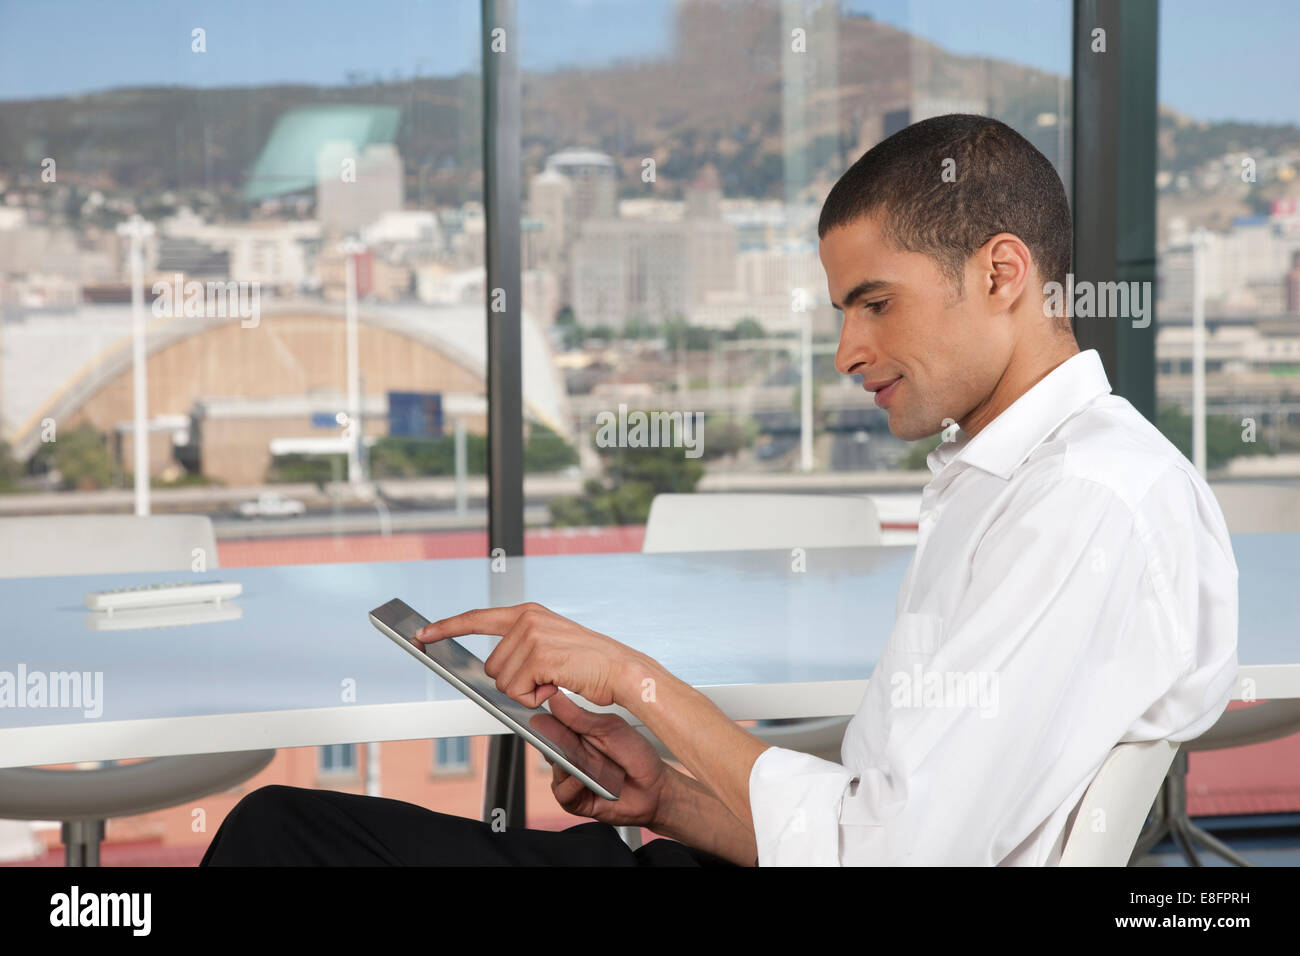 Businessman siting in an office with digital tablet - Stock Image